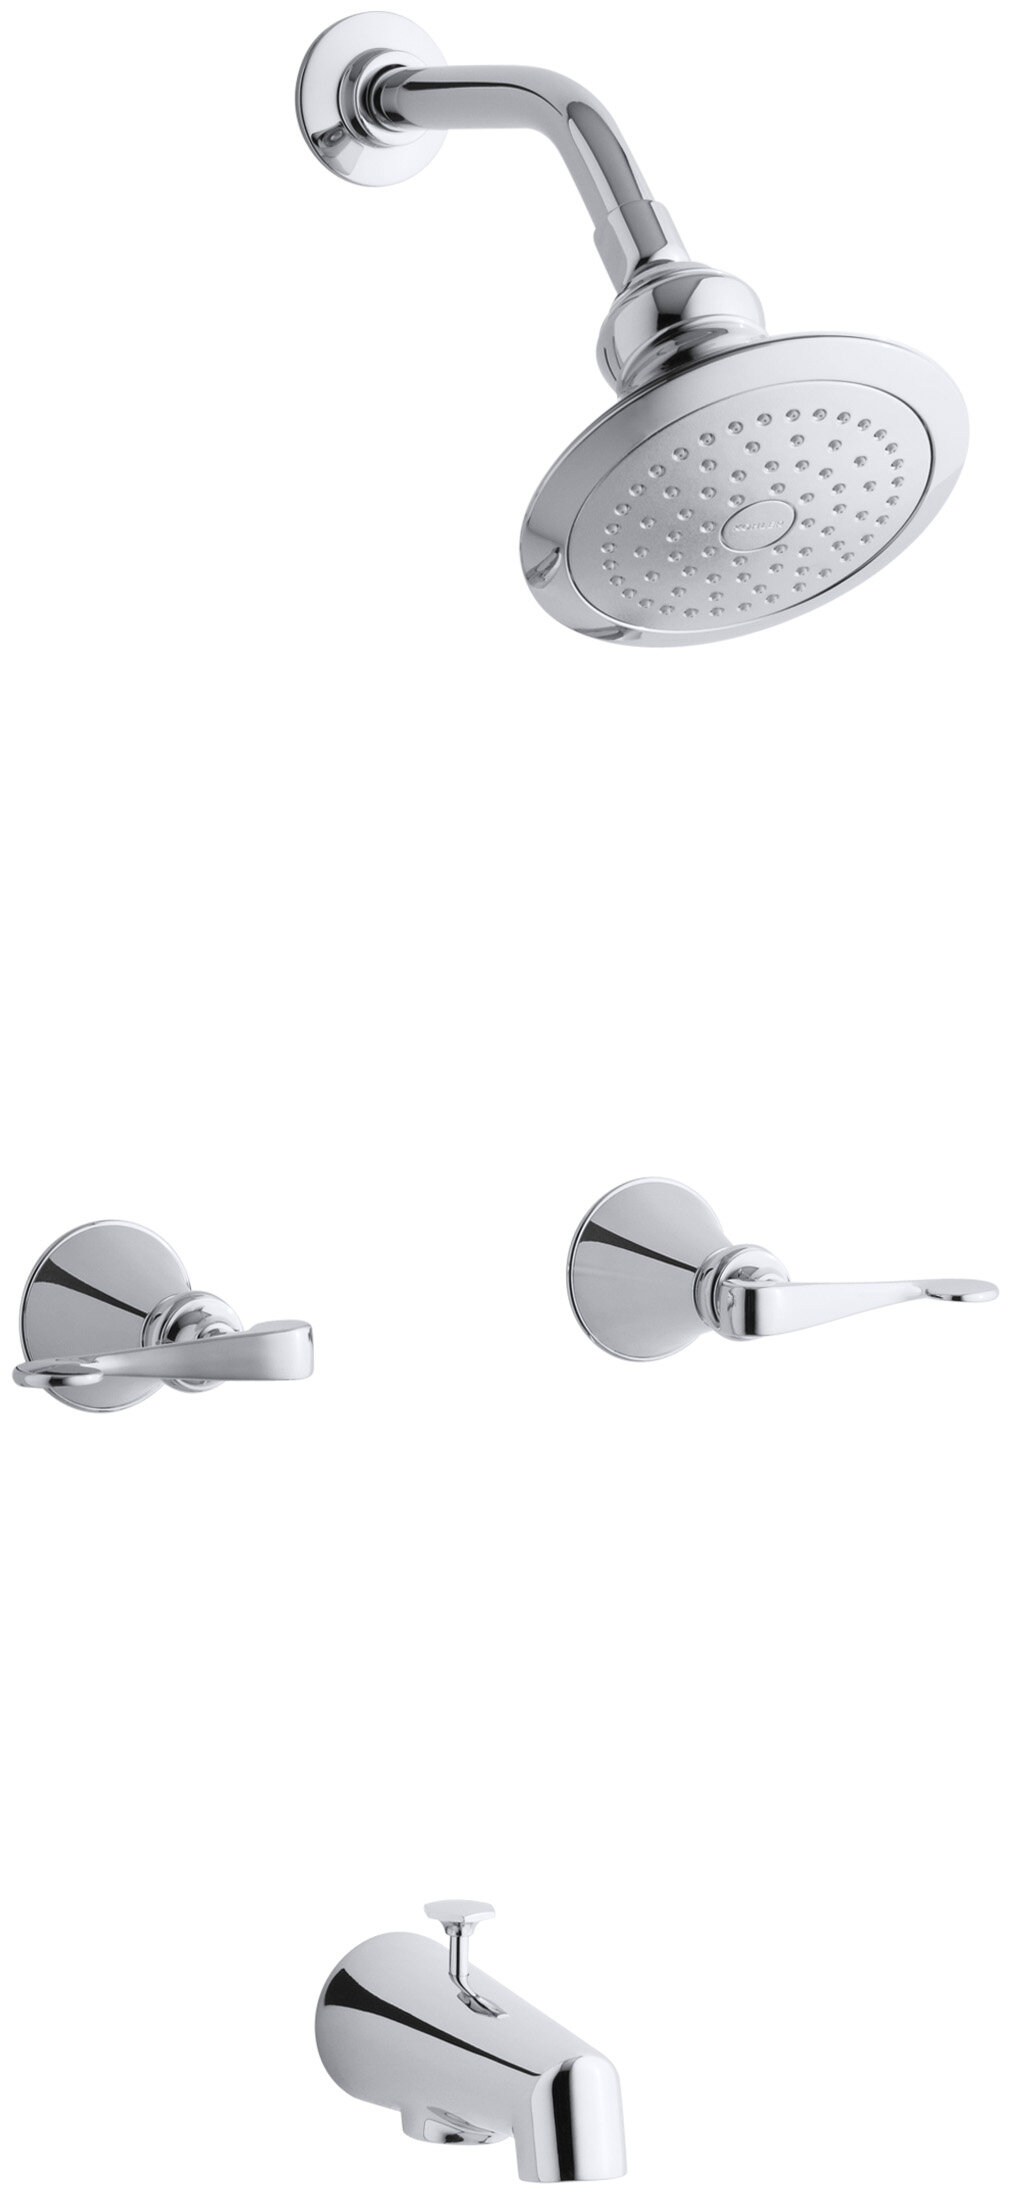 K 16213 4 Cp Kohler Revival Bath And Shower Faucet With Scroll Lever Handles And Standard Showerarm And Flange Wayfair